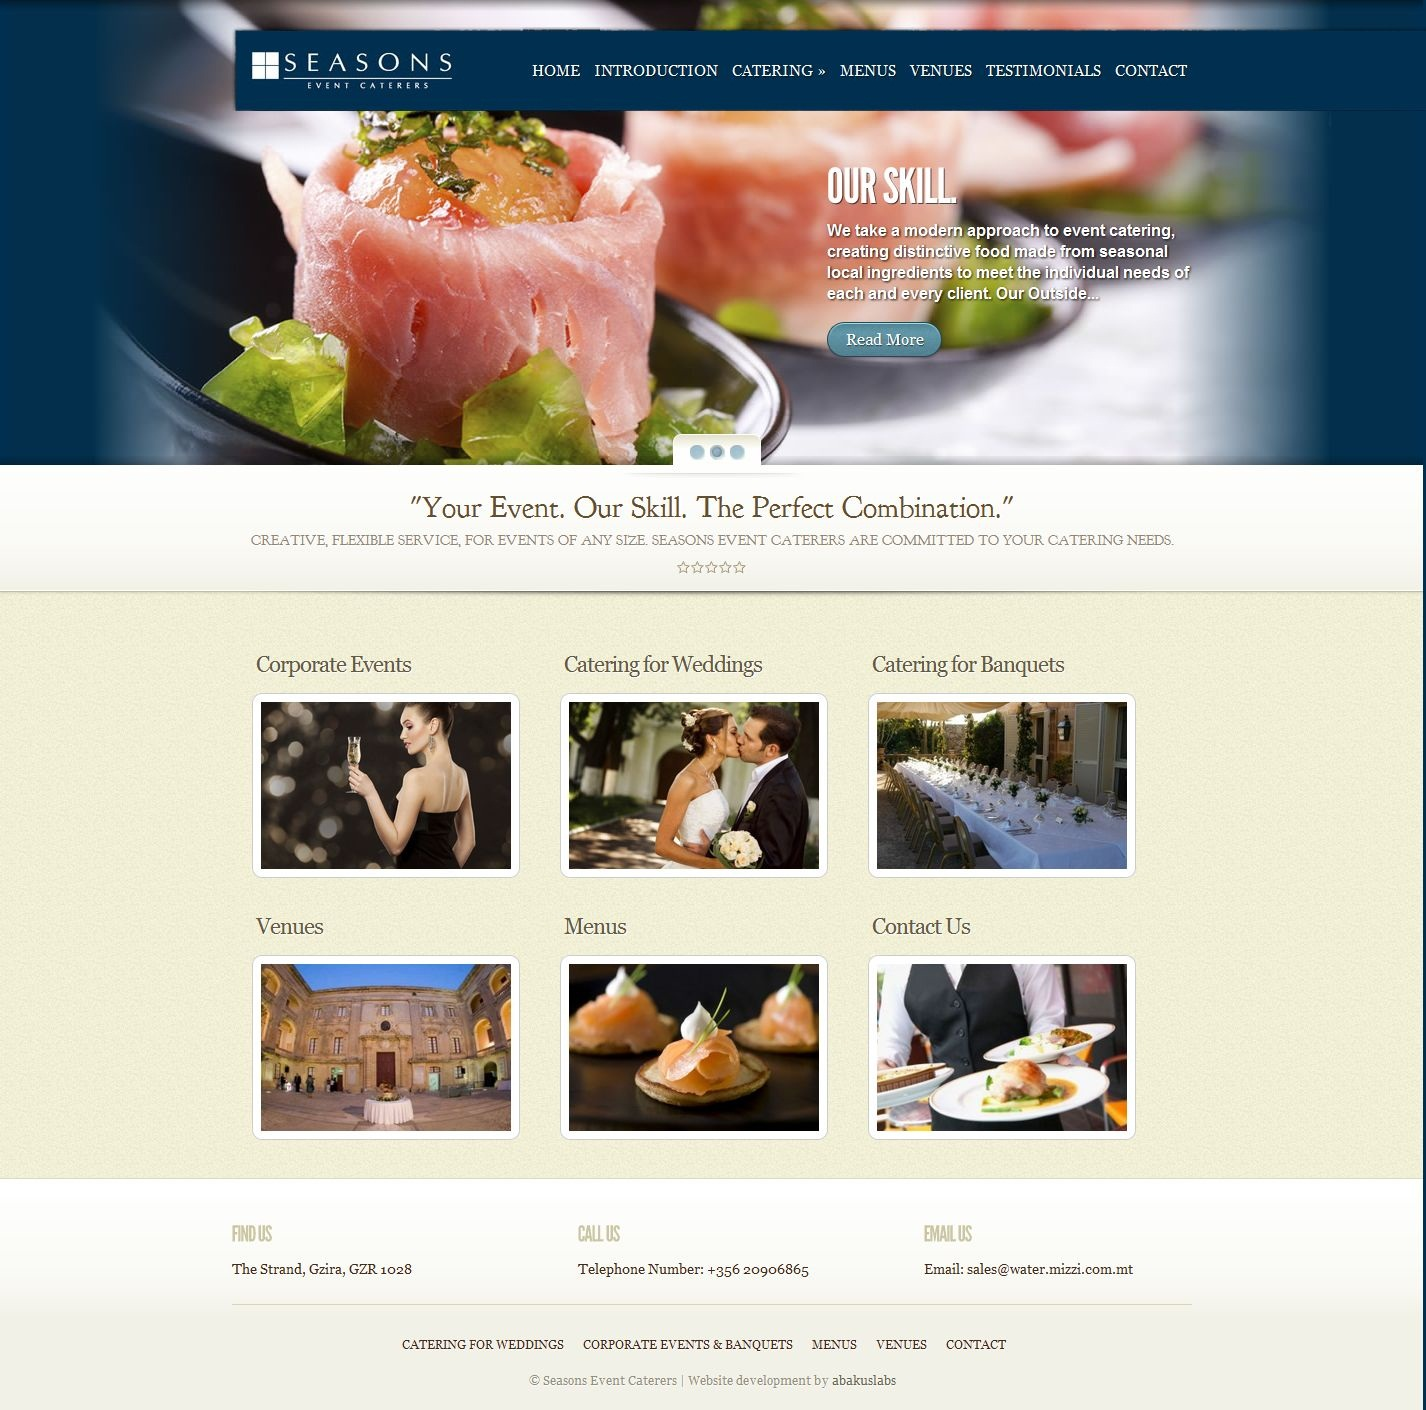 Seasons Events Caterers launch new web portal